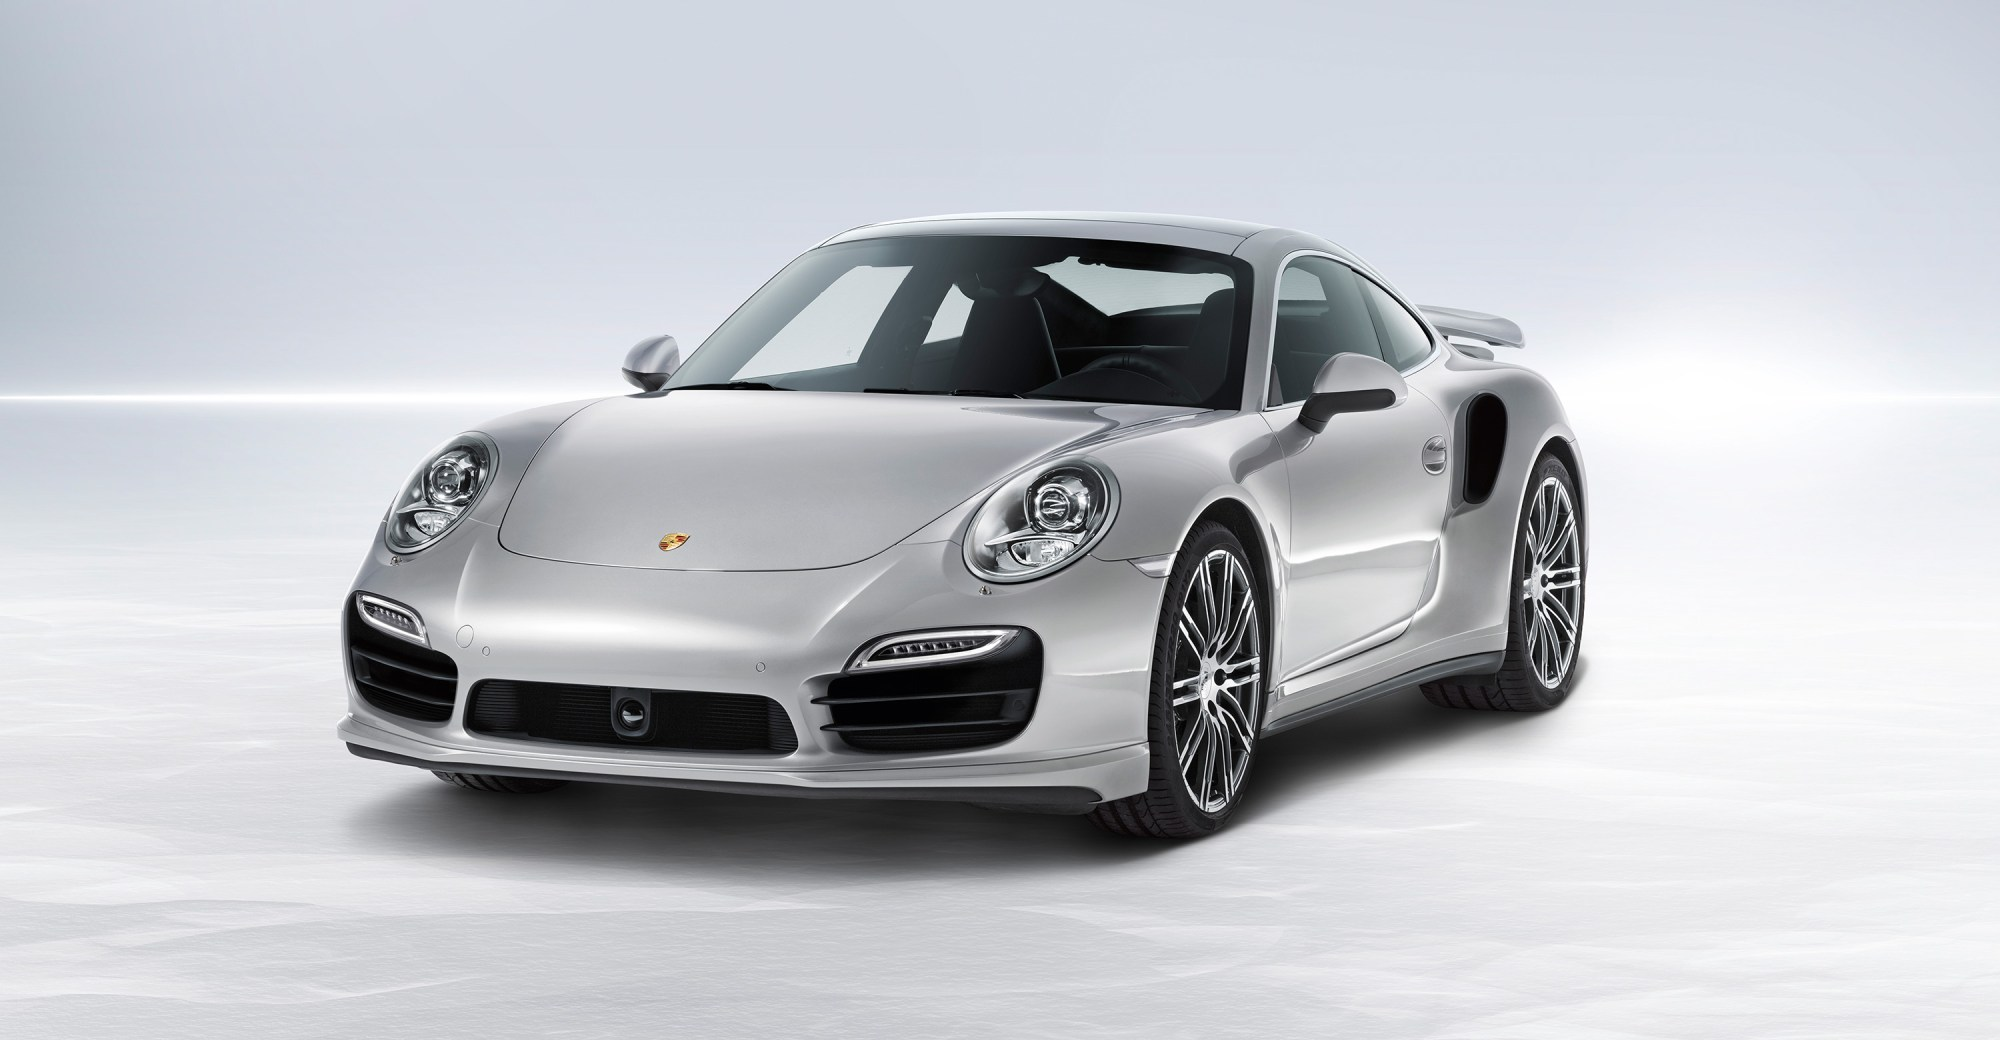 hight resolution of 2014 porsche 911 turbo turbo s stinger gtr by topcar top speed